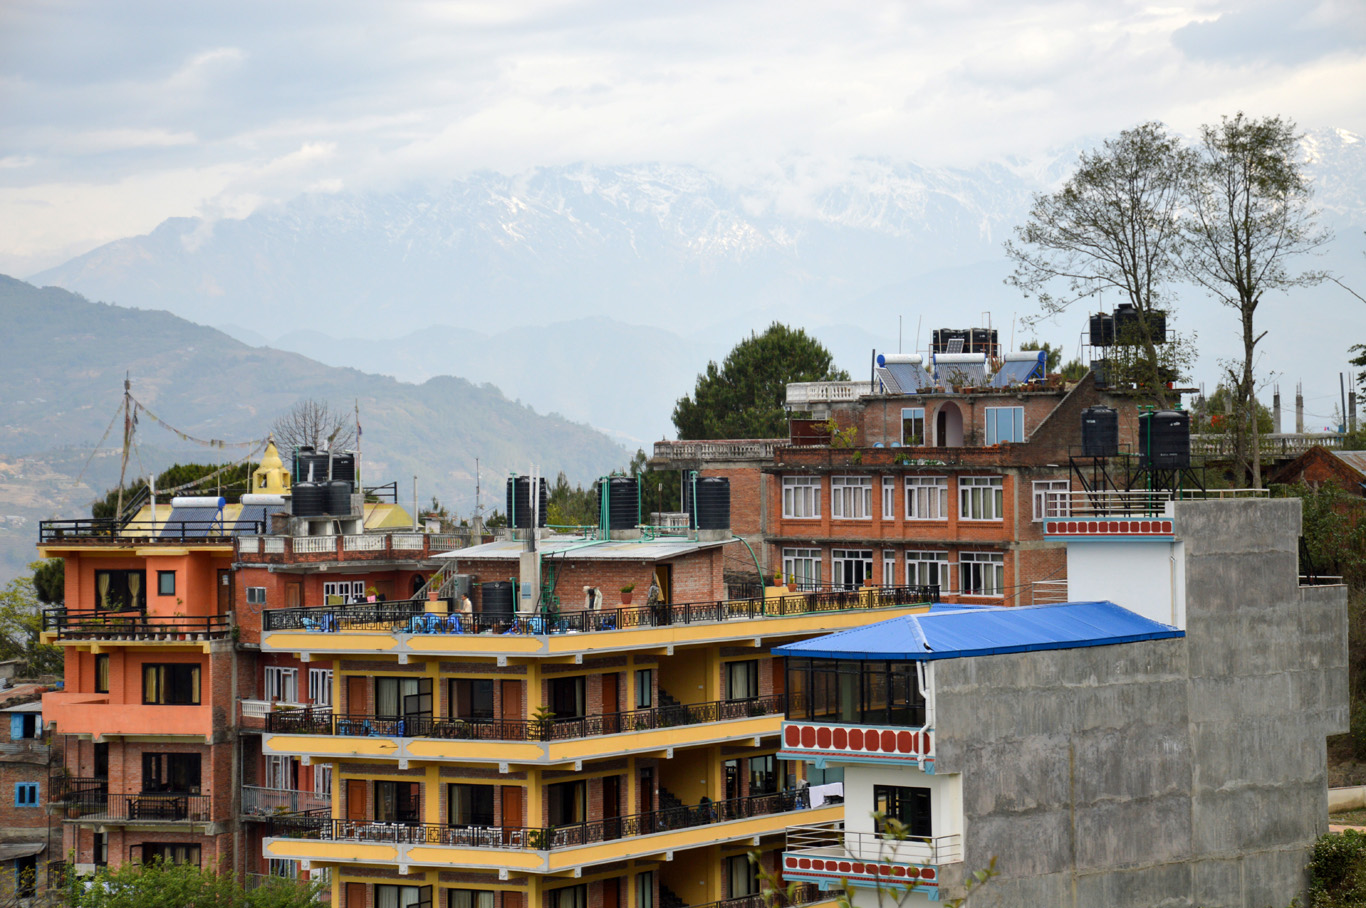 The hotels in the center of Nagarkot